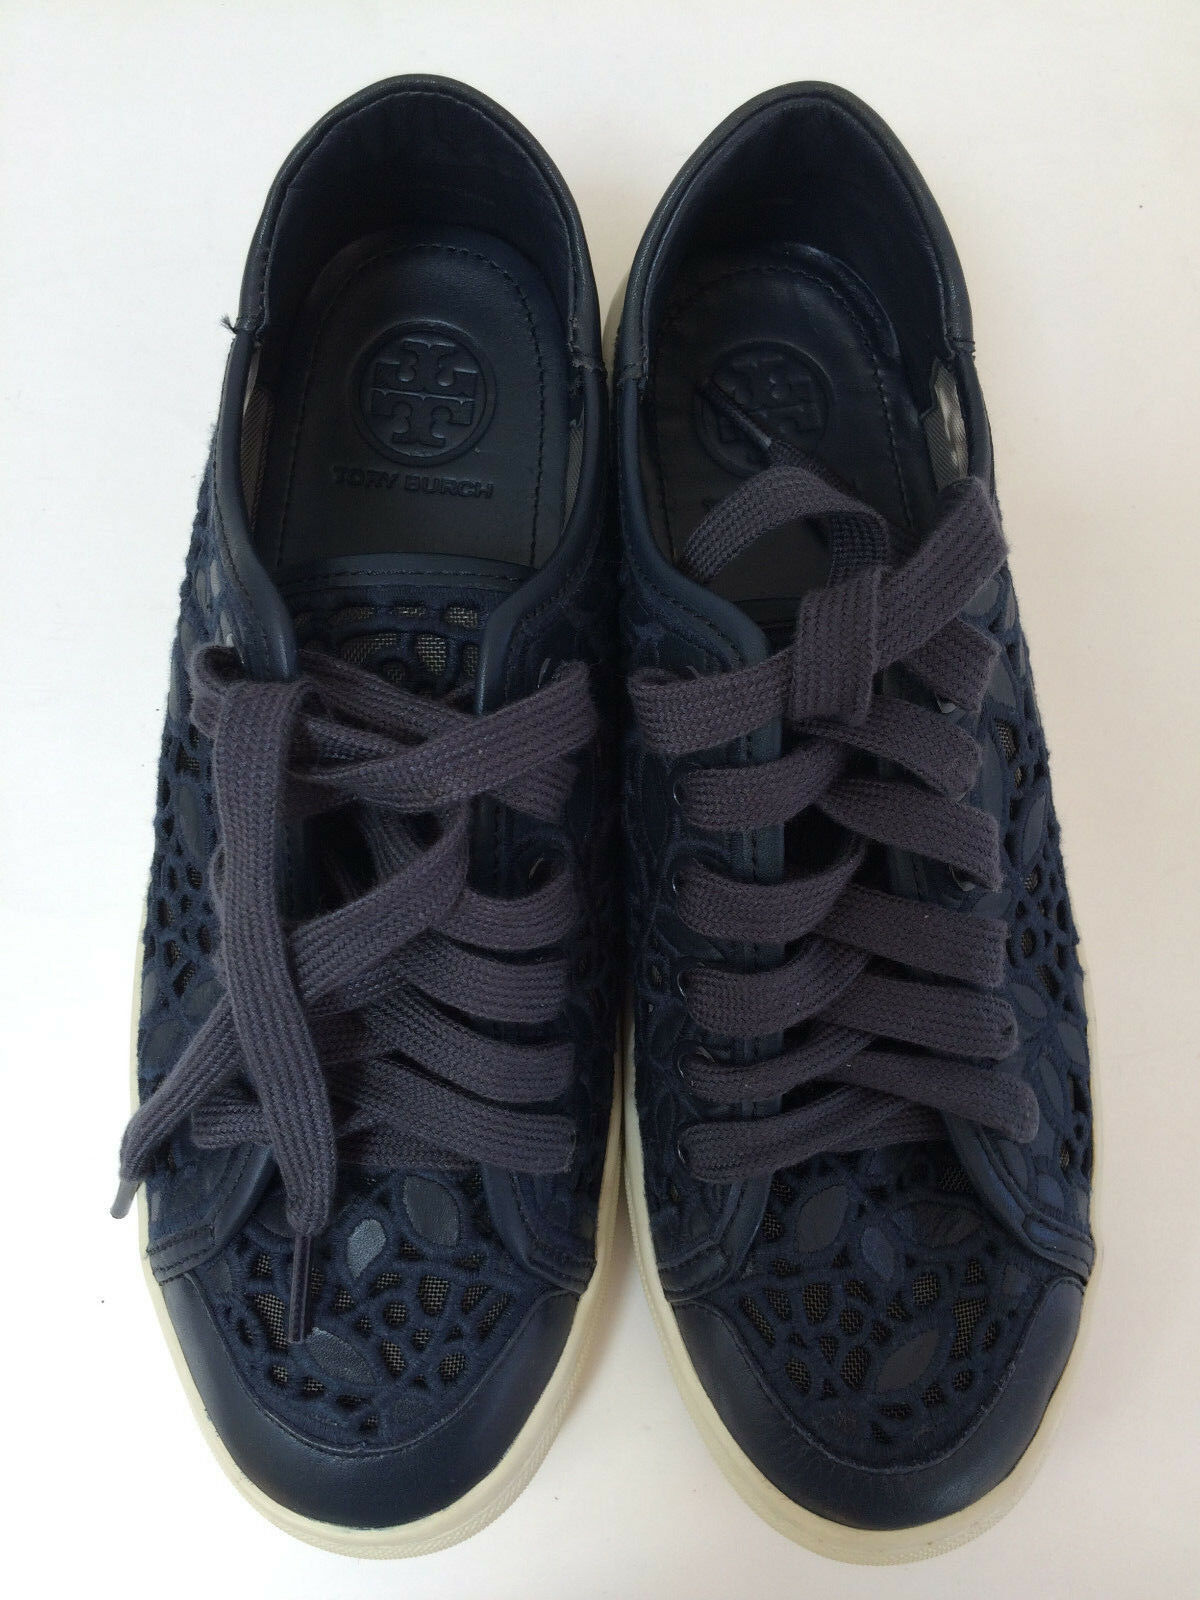 New Tory burch Mesh Rhea Embroidery Leder Lace Mesh burch Sneaker Tori Navy Sz 8.5M 9.5M df4e63